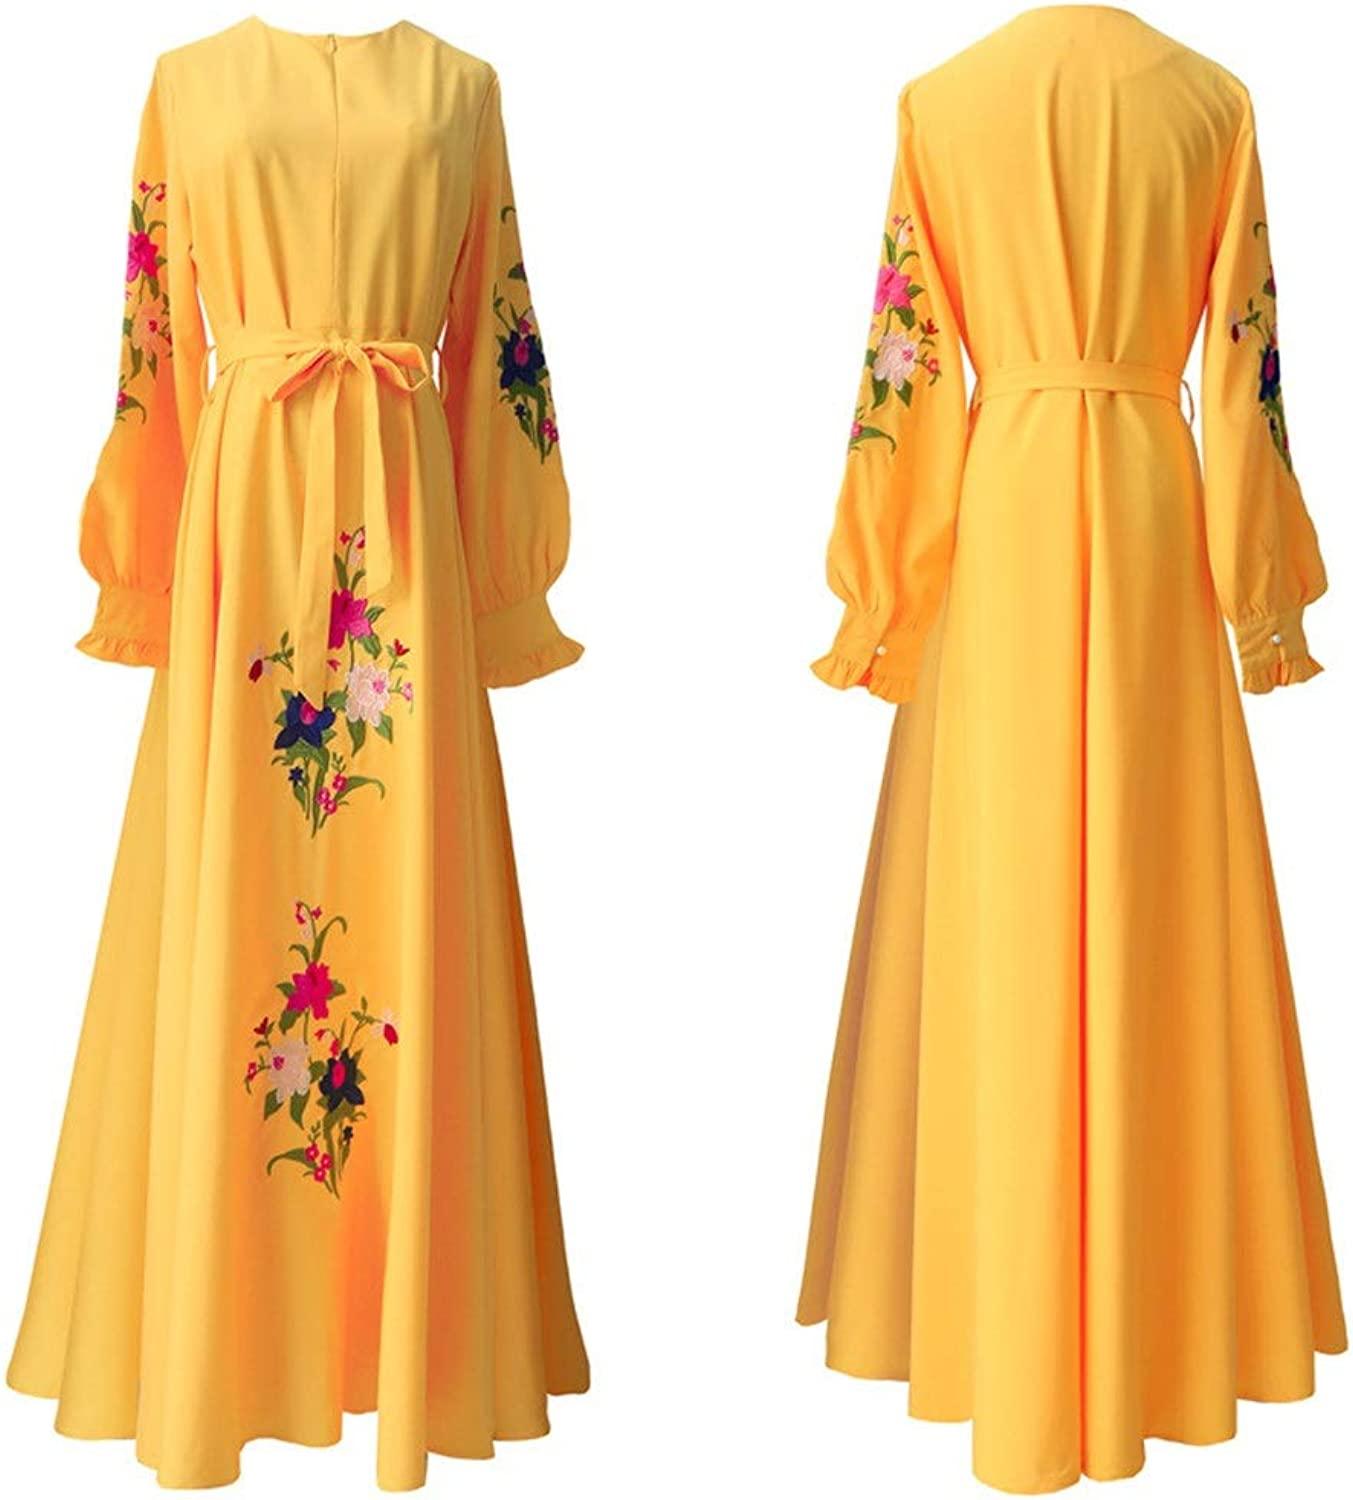 Bridesmaid Dress Women Crew Neck Long Sleeve Embroidered Floral Long Evening Gown Loose Aline Long Maxi Dress with Belt Vintage Cocktail Party Prom Formal Dress (color   Yellow, Size   XXL)